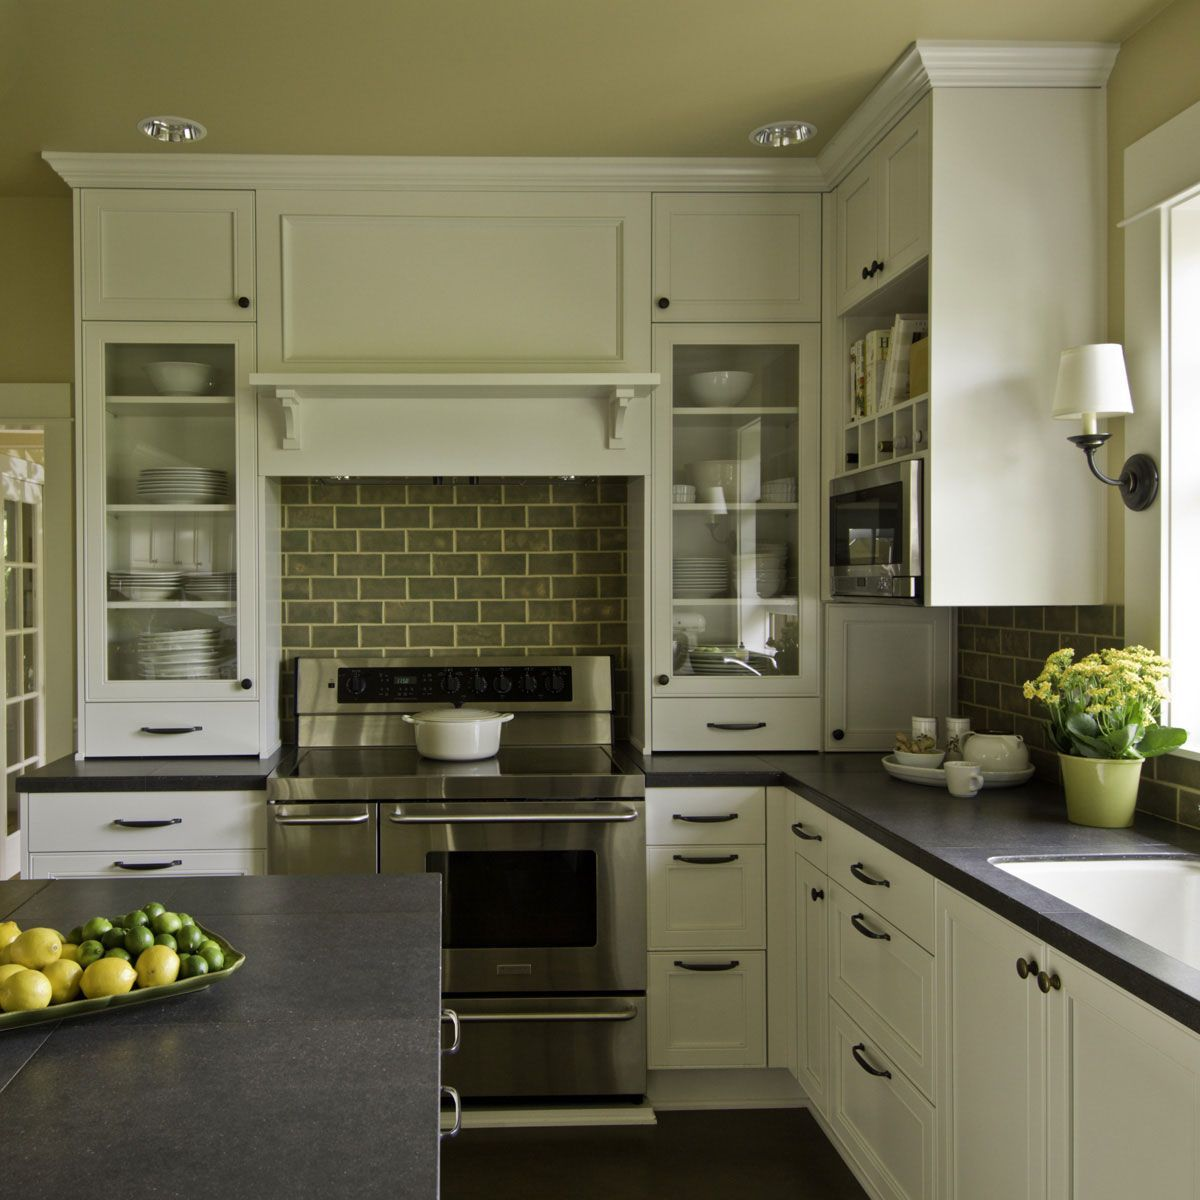 find cool l shaped kitchen design for your home now bungalow kitchen kitchen remodel kitchen on l kitchen remodel id=80697